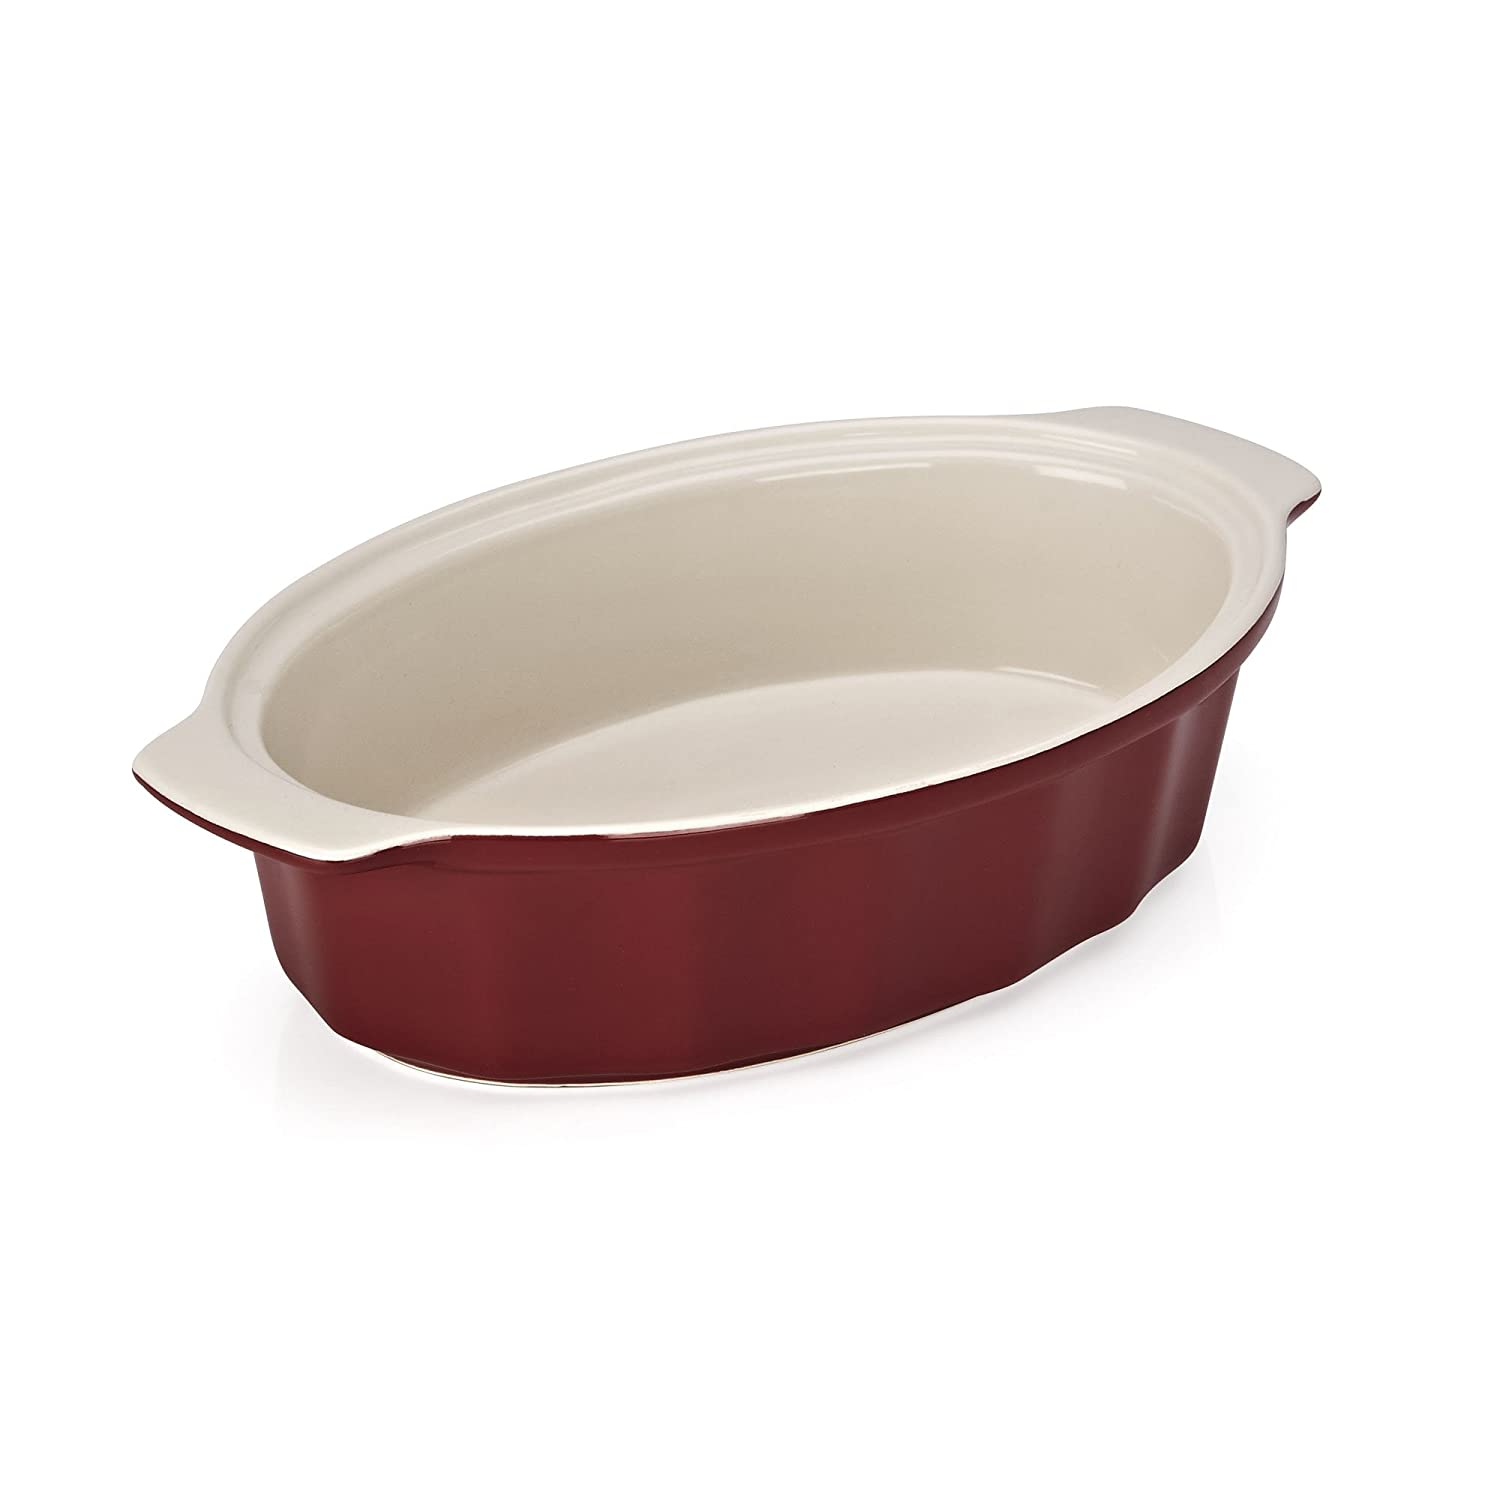 Good Cook 04489 OvenFresh Stoneware Ceramic Casserole Dish, 1.75 quart, Red